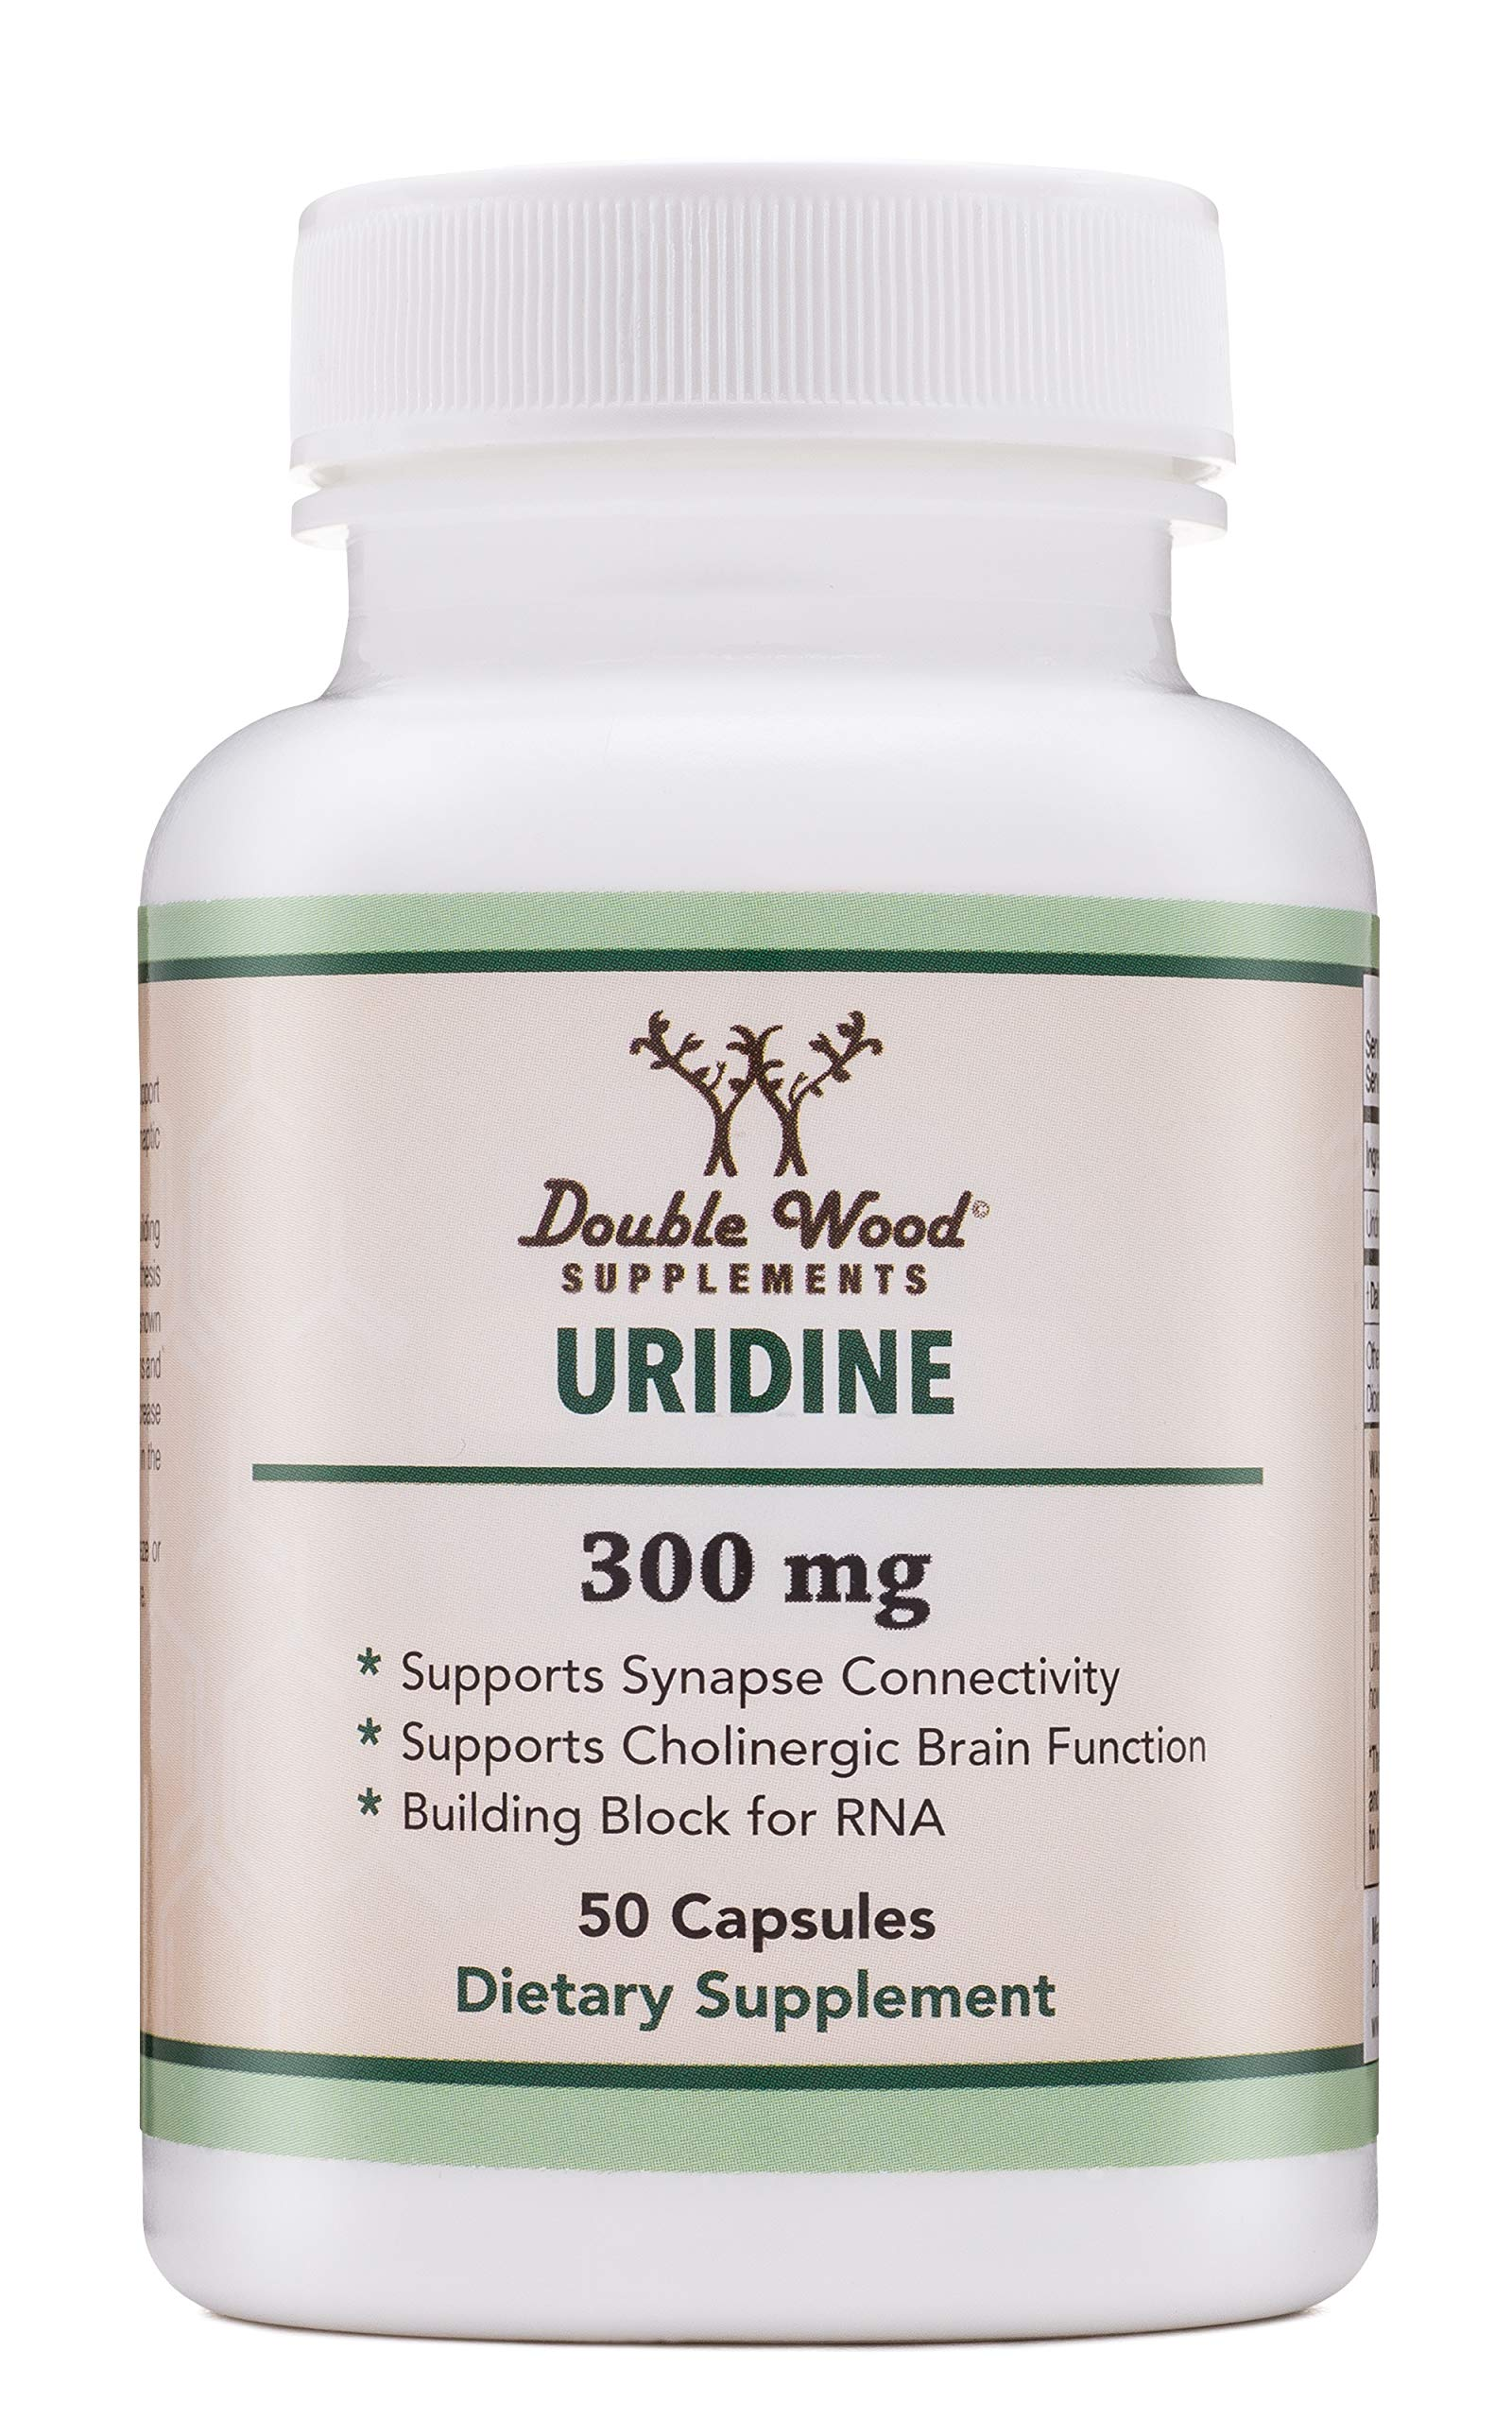 Uridine Monophosphate - Third Party Tested (Choline Enhancer, Beginner Nootropic) 300mg - 50 Capsules, Made in USA by Double Wood Supplements by Double Wood Supplements (Image #1)